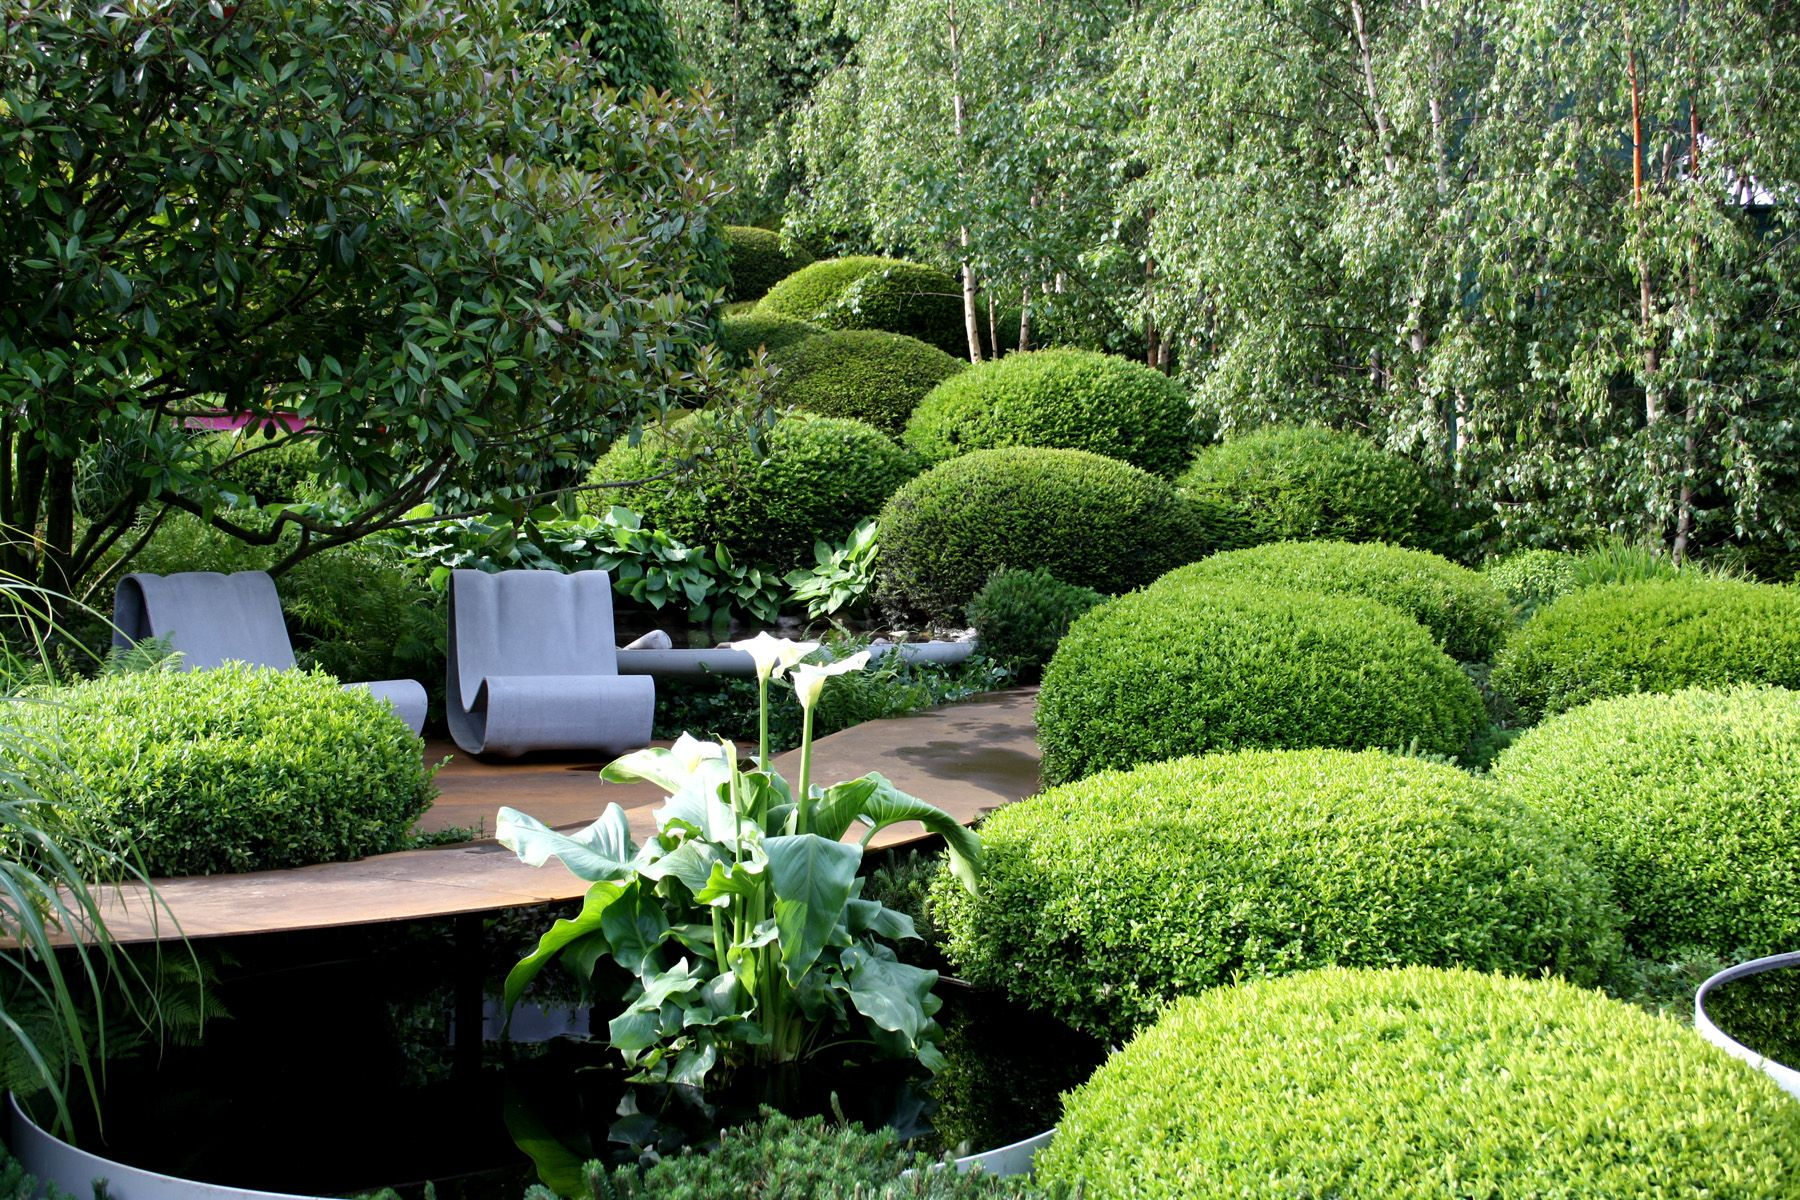 Secluded waterside seating amid boxwoods with nearby birch